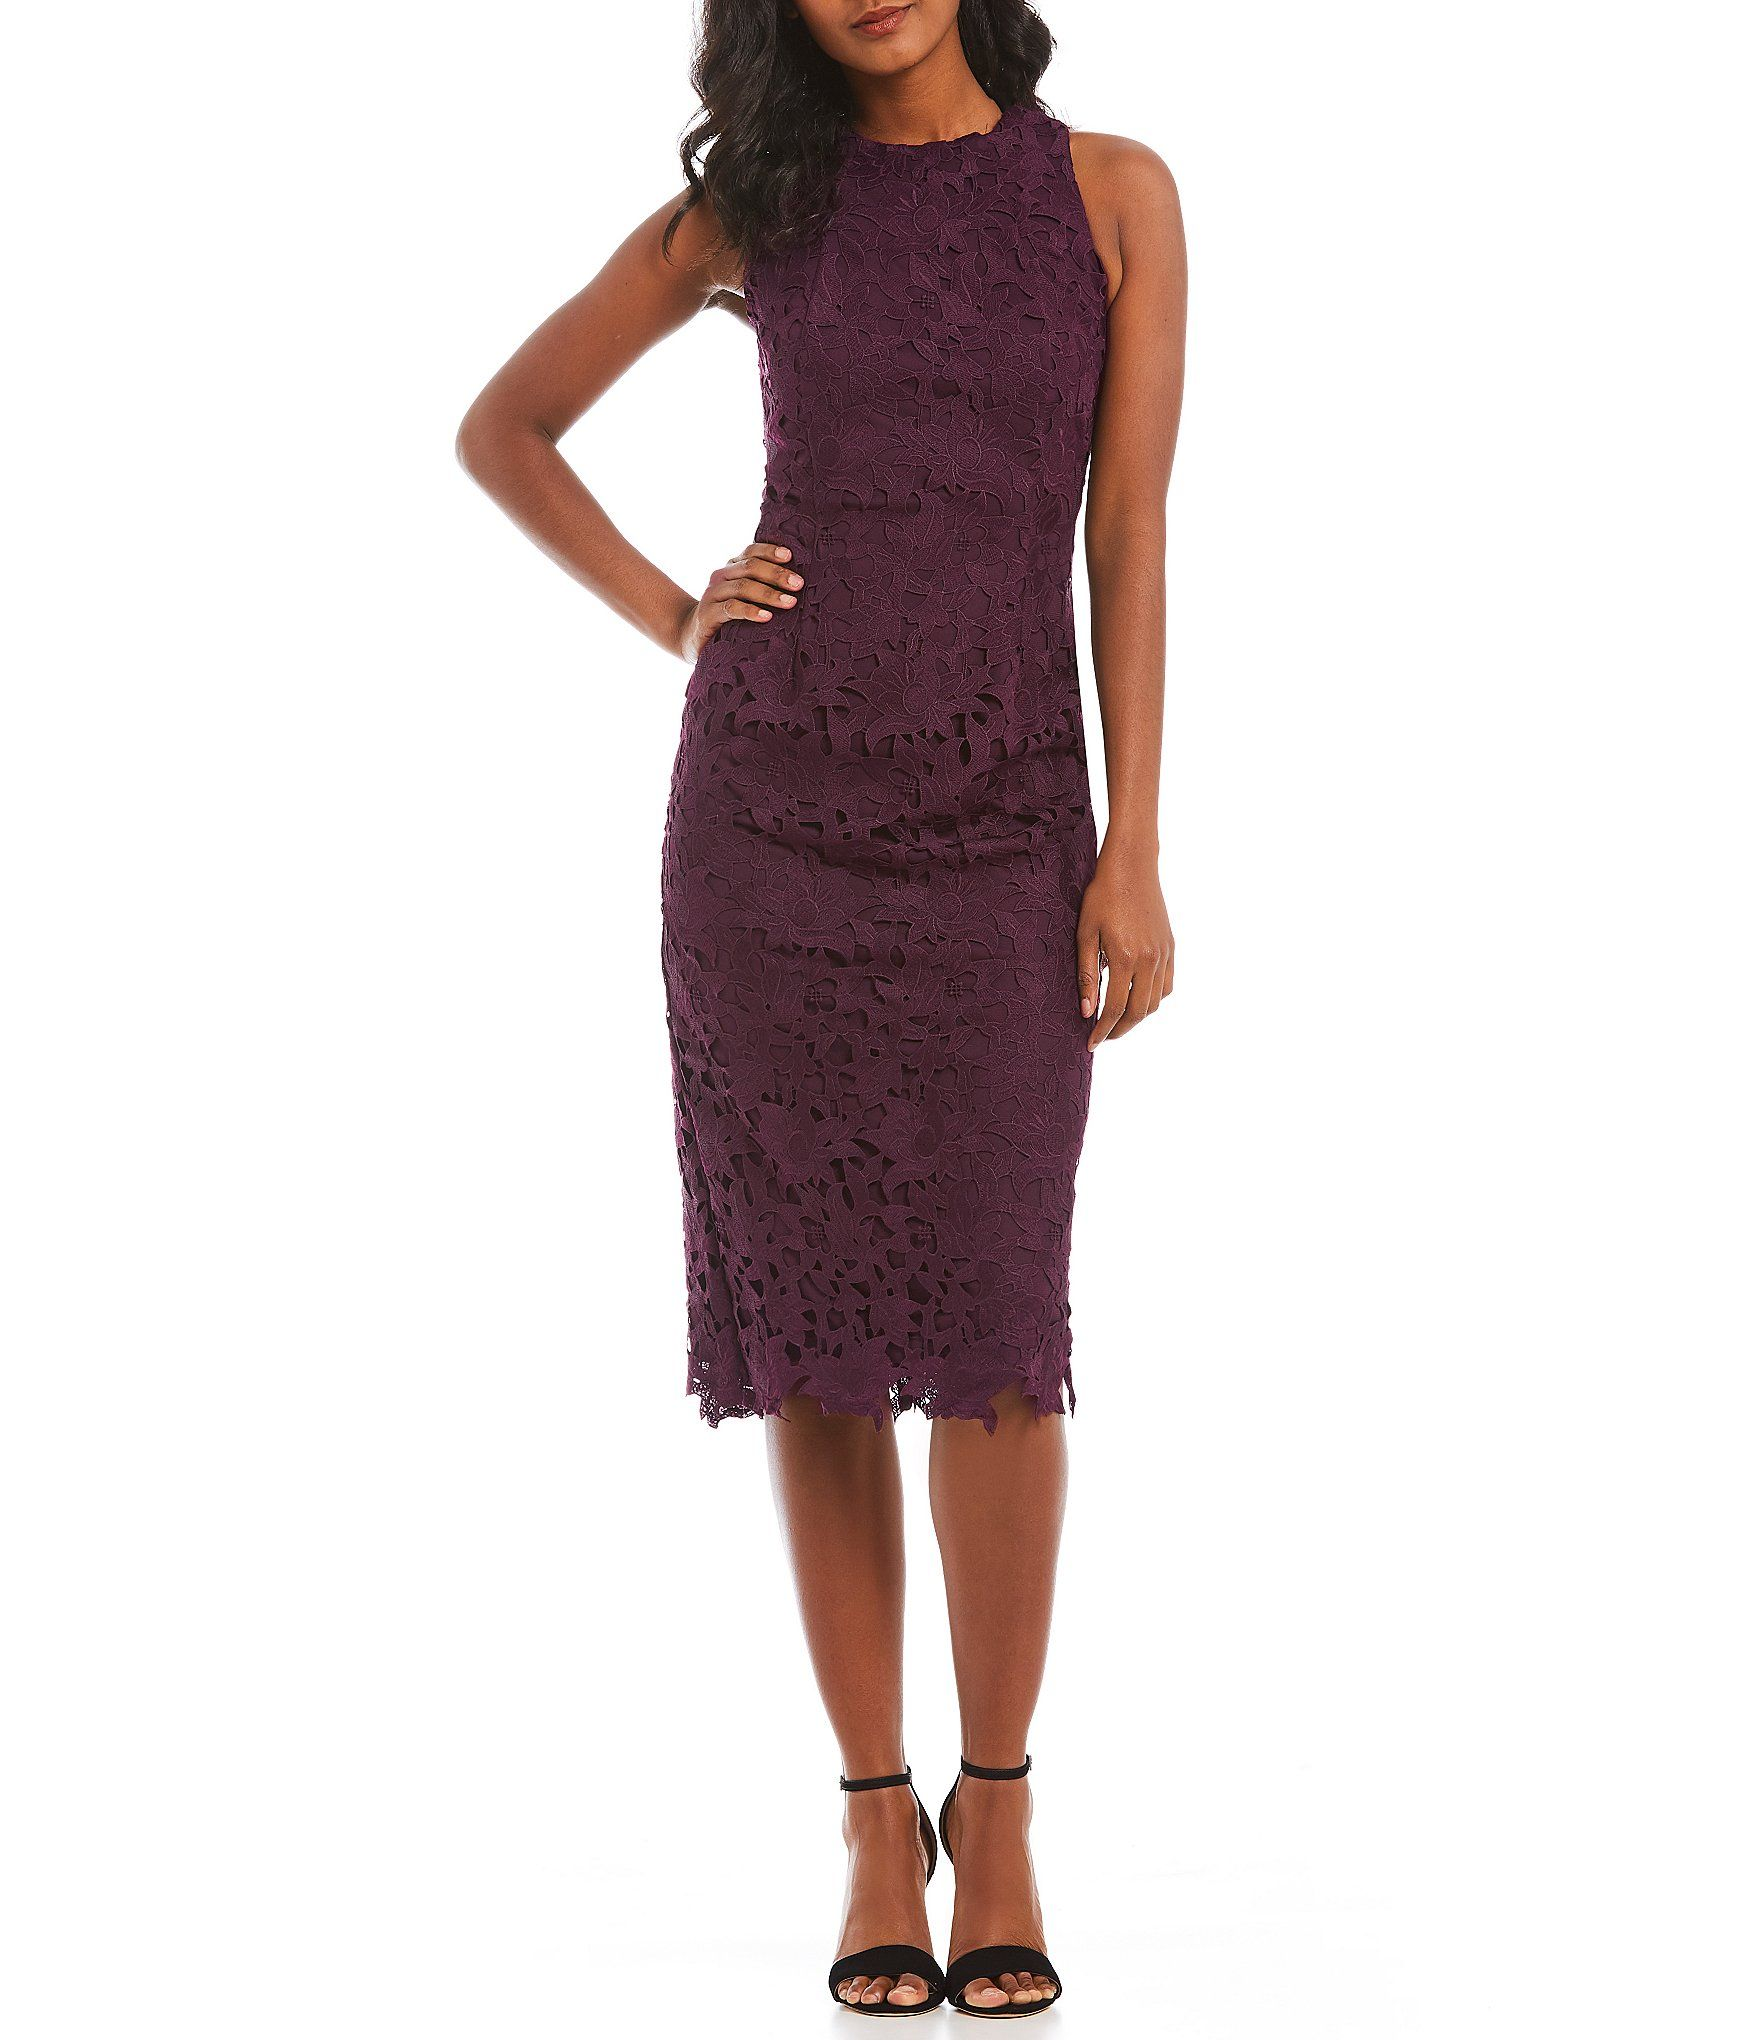 af080c3ecab Shop for Antonio Melani Peggy Lace Dress at Dillards.com. Visit Dillards.com